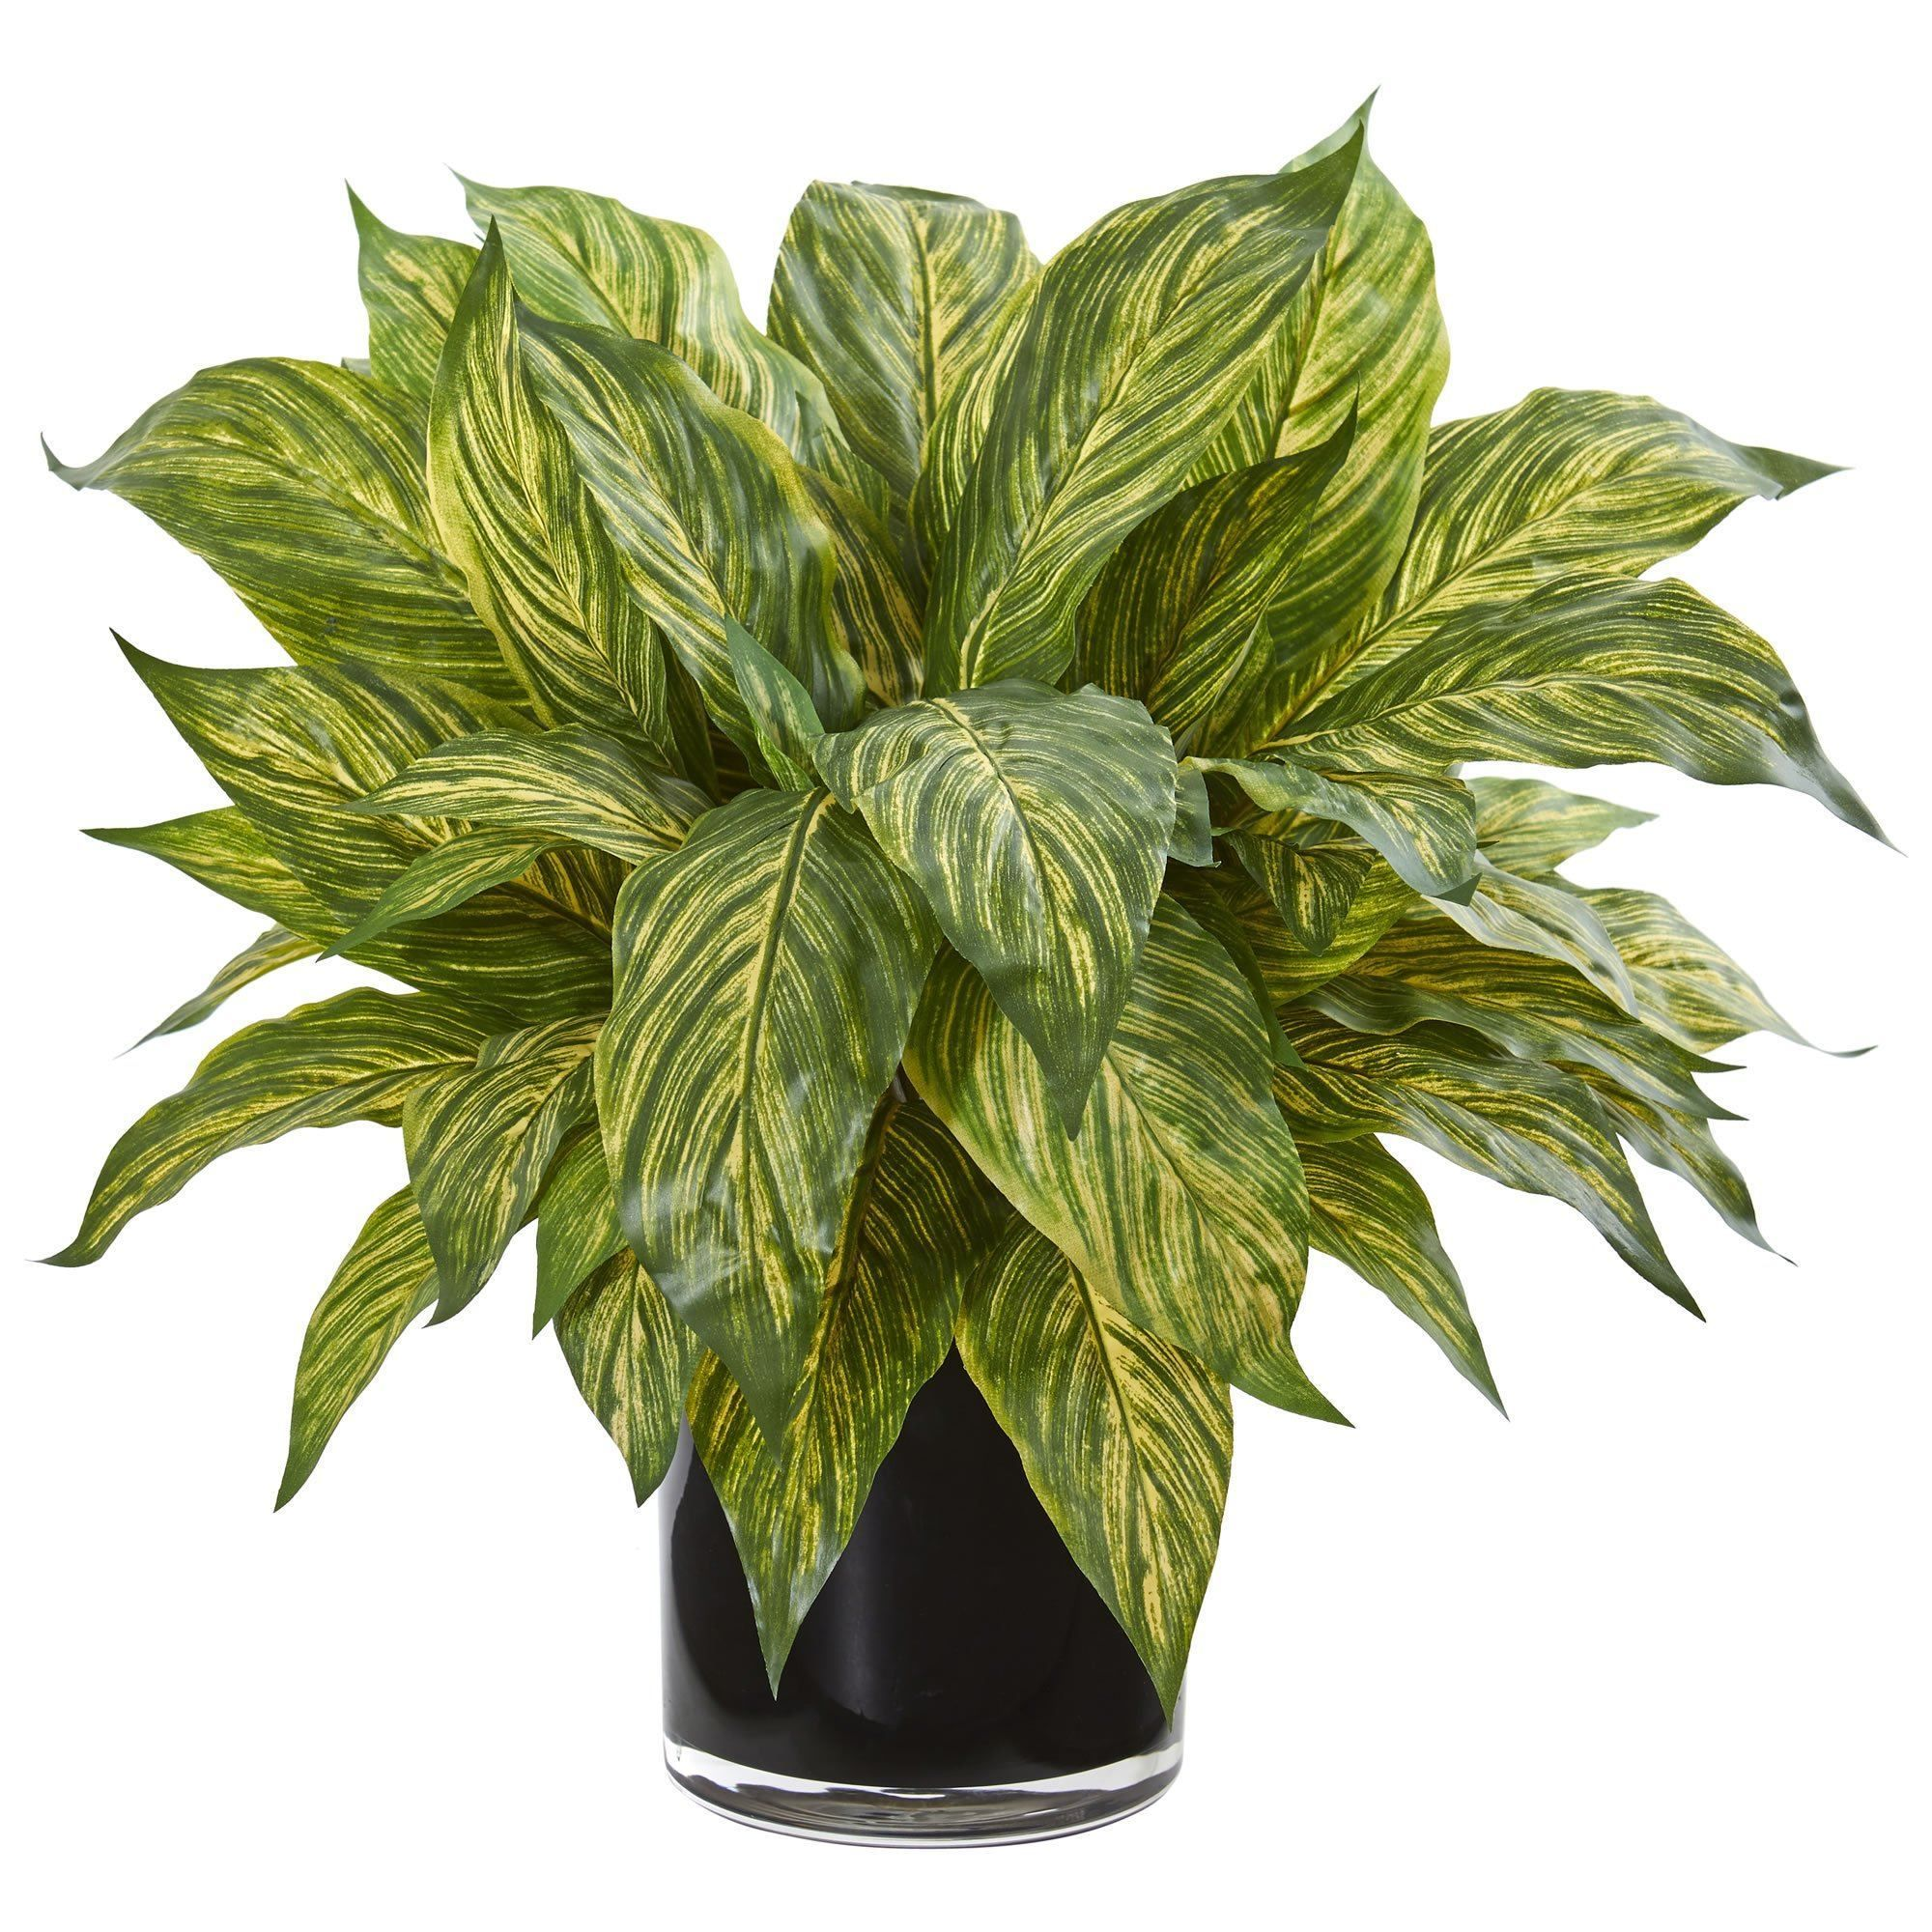 Musa Leaf Artificial Plant In Glossy Black Vase In 2021 Artificial Plants Black Vase Plants